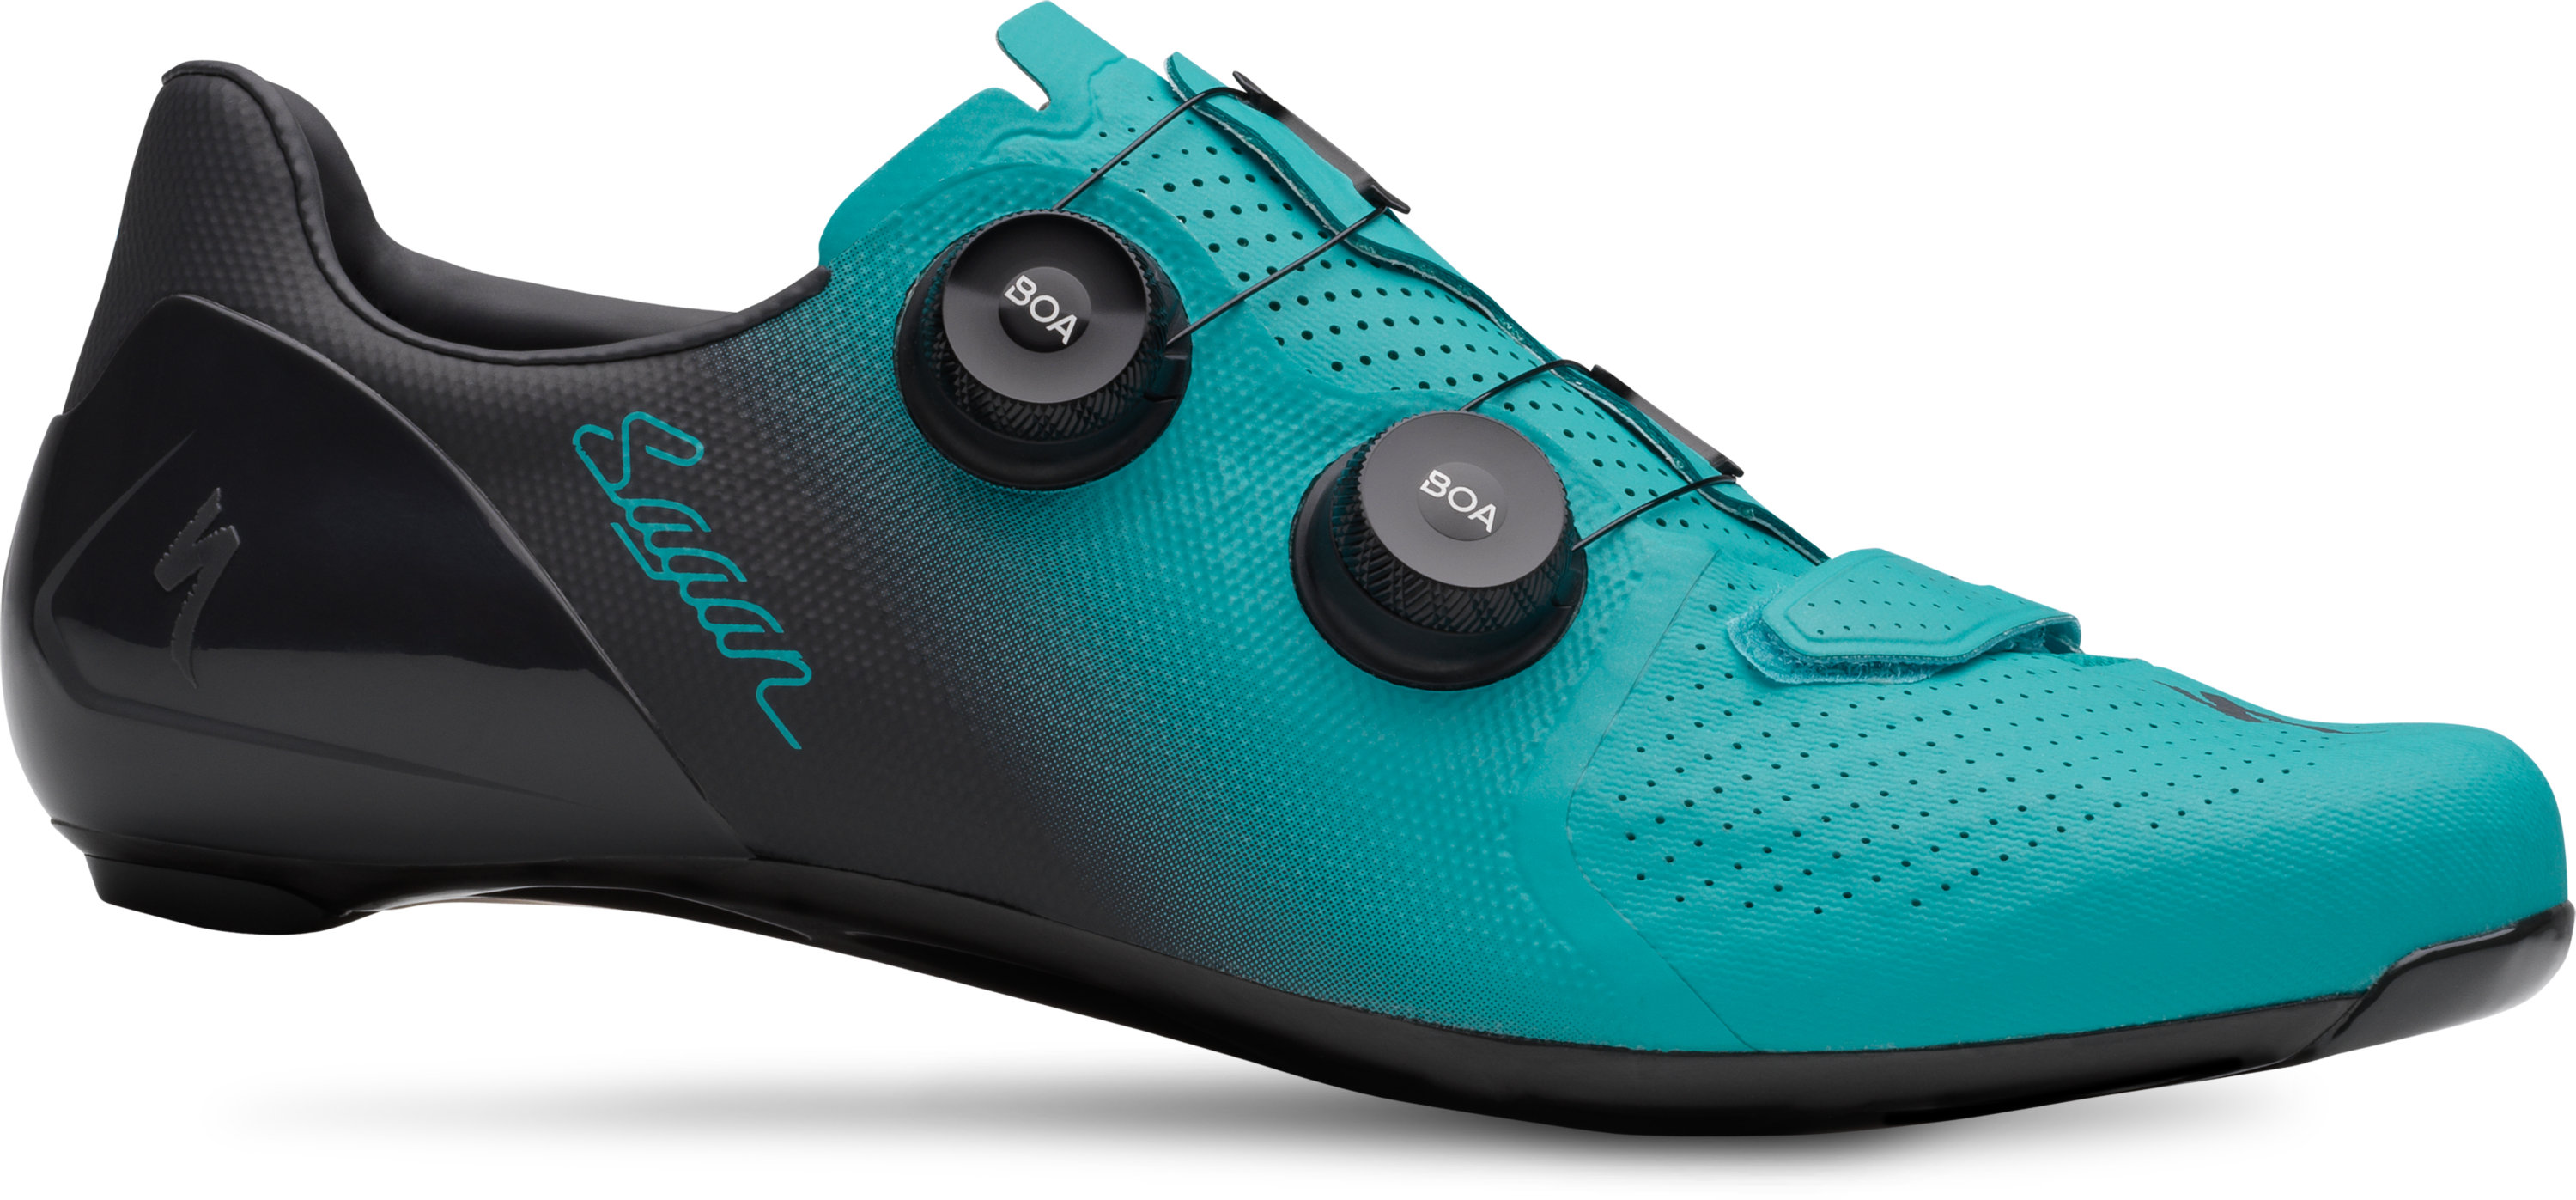 36fb8aa192f S-Works 7 Road Shoes – Sagan Collection LTD | Specialized.com